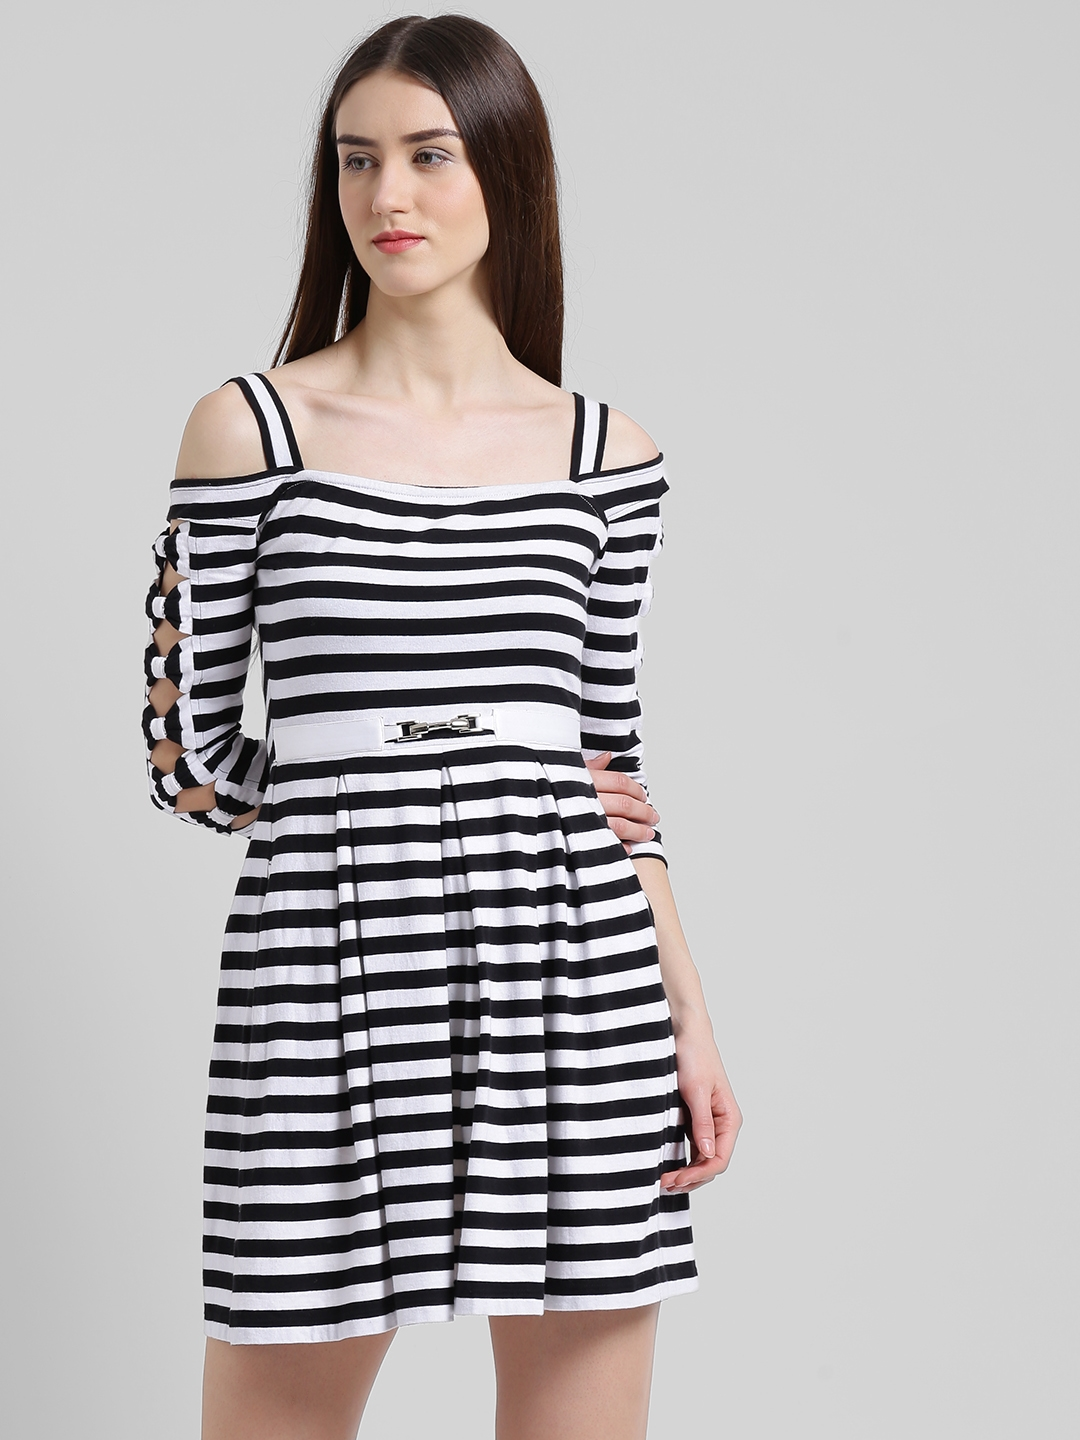 Texco Women Black Striped Fit and Flare Dress